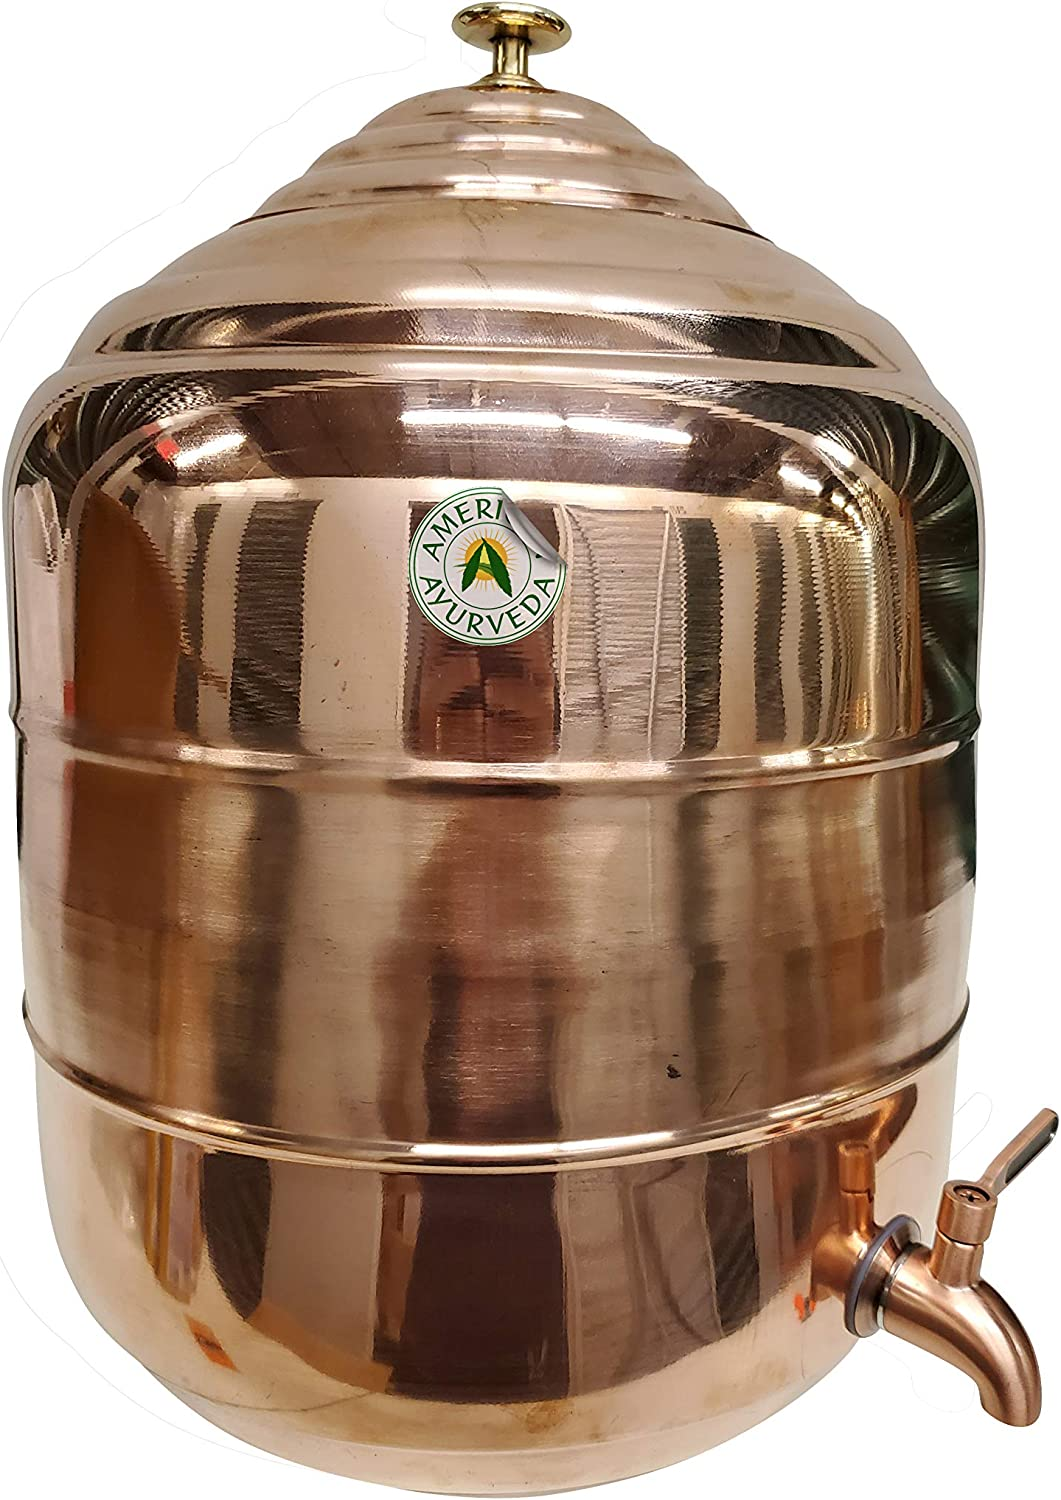 American Ayurveda Counter Top 5 Gallon Water Dispenser Copper Storage Tank/Pot With Brass Faucet Copper Charged Water Kitchen Home Health Yoga Meditation Spa